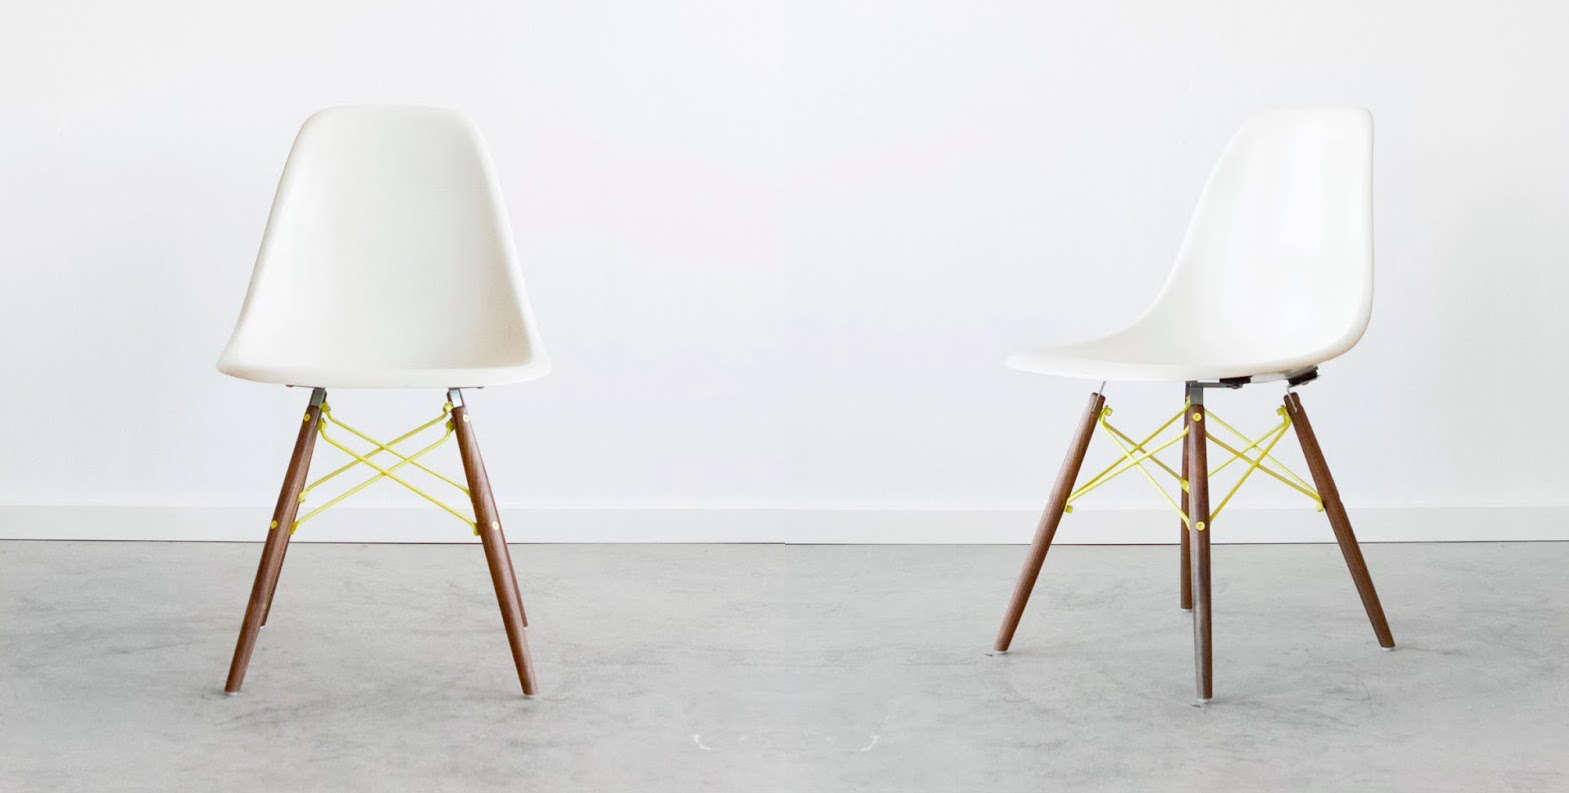 Modified Modern: Reimagined Midcentury Furniture From Cast + Crew In Marfa